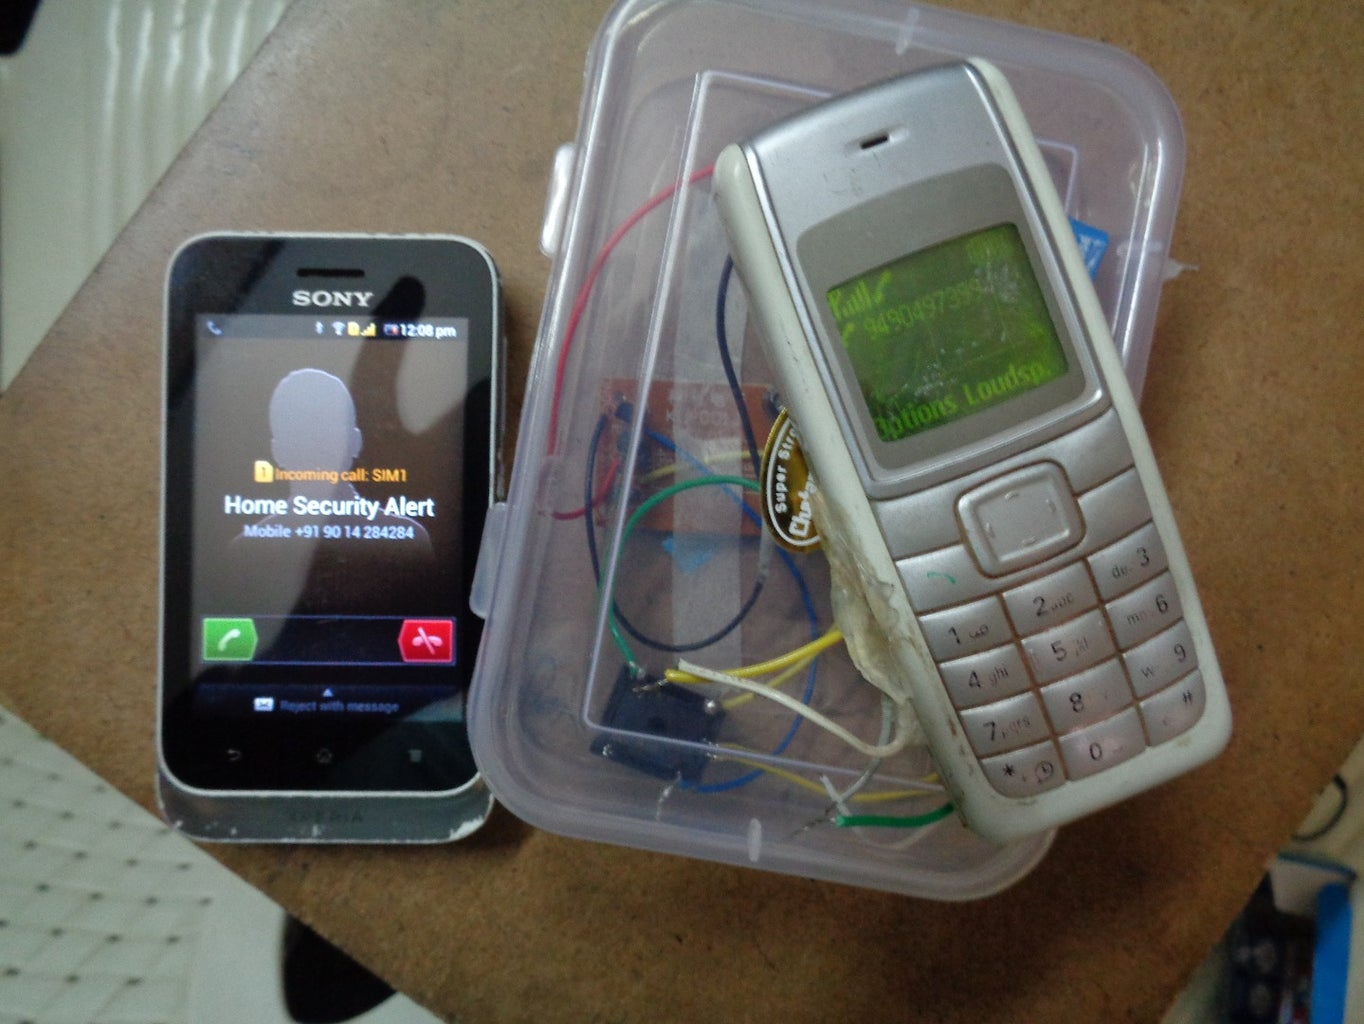 Security System With Old R/c Car and Cellphone